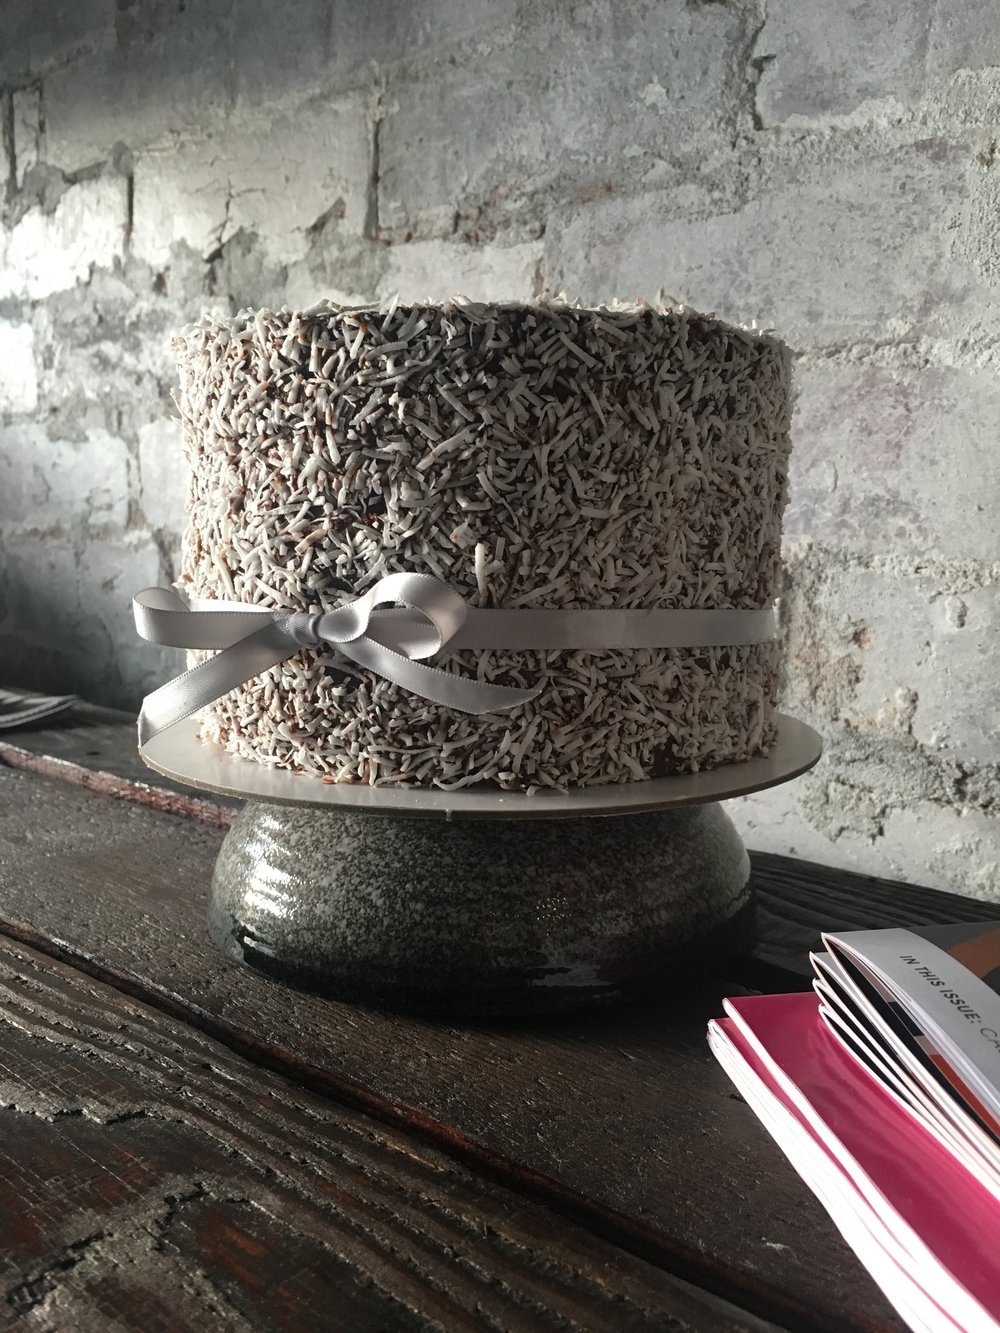 Lamington Cake - Layers of chocolate and vanilla sponge, house made jam, finished with chocolate ganache and coconut,